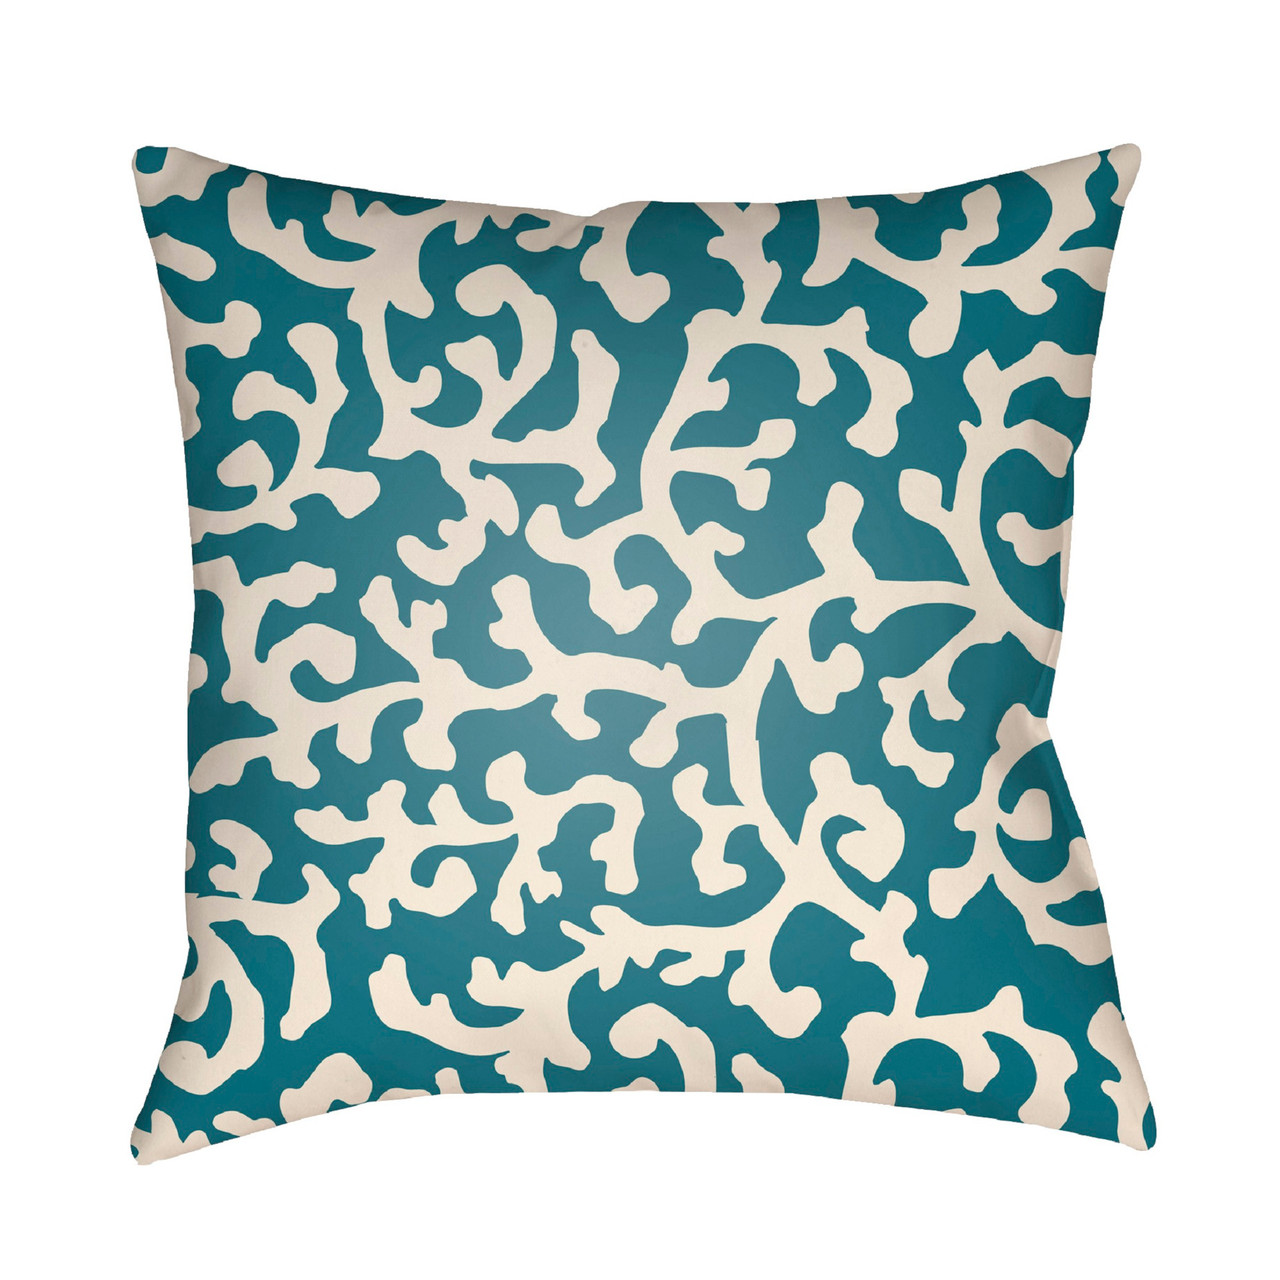 18 teal and ivory digitally printed coral reefs pattern square throw pillow cover